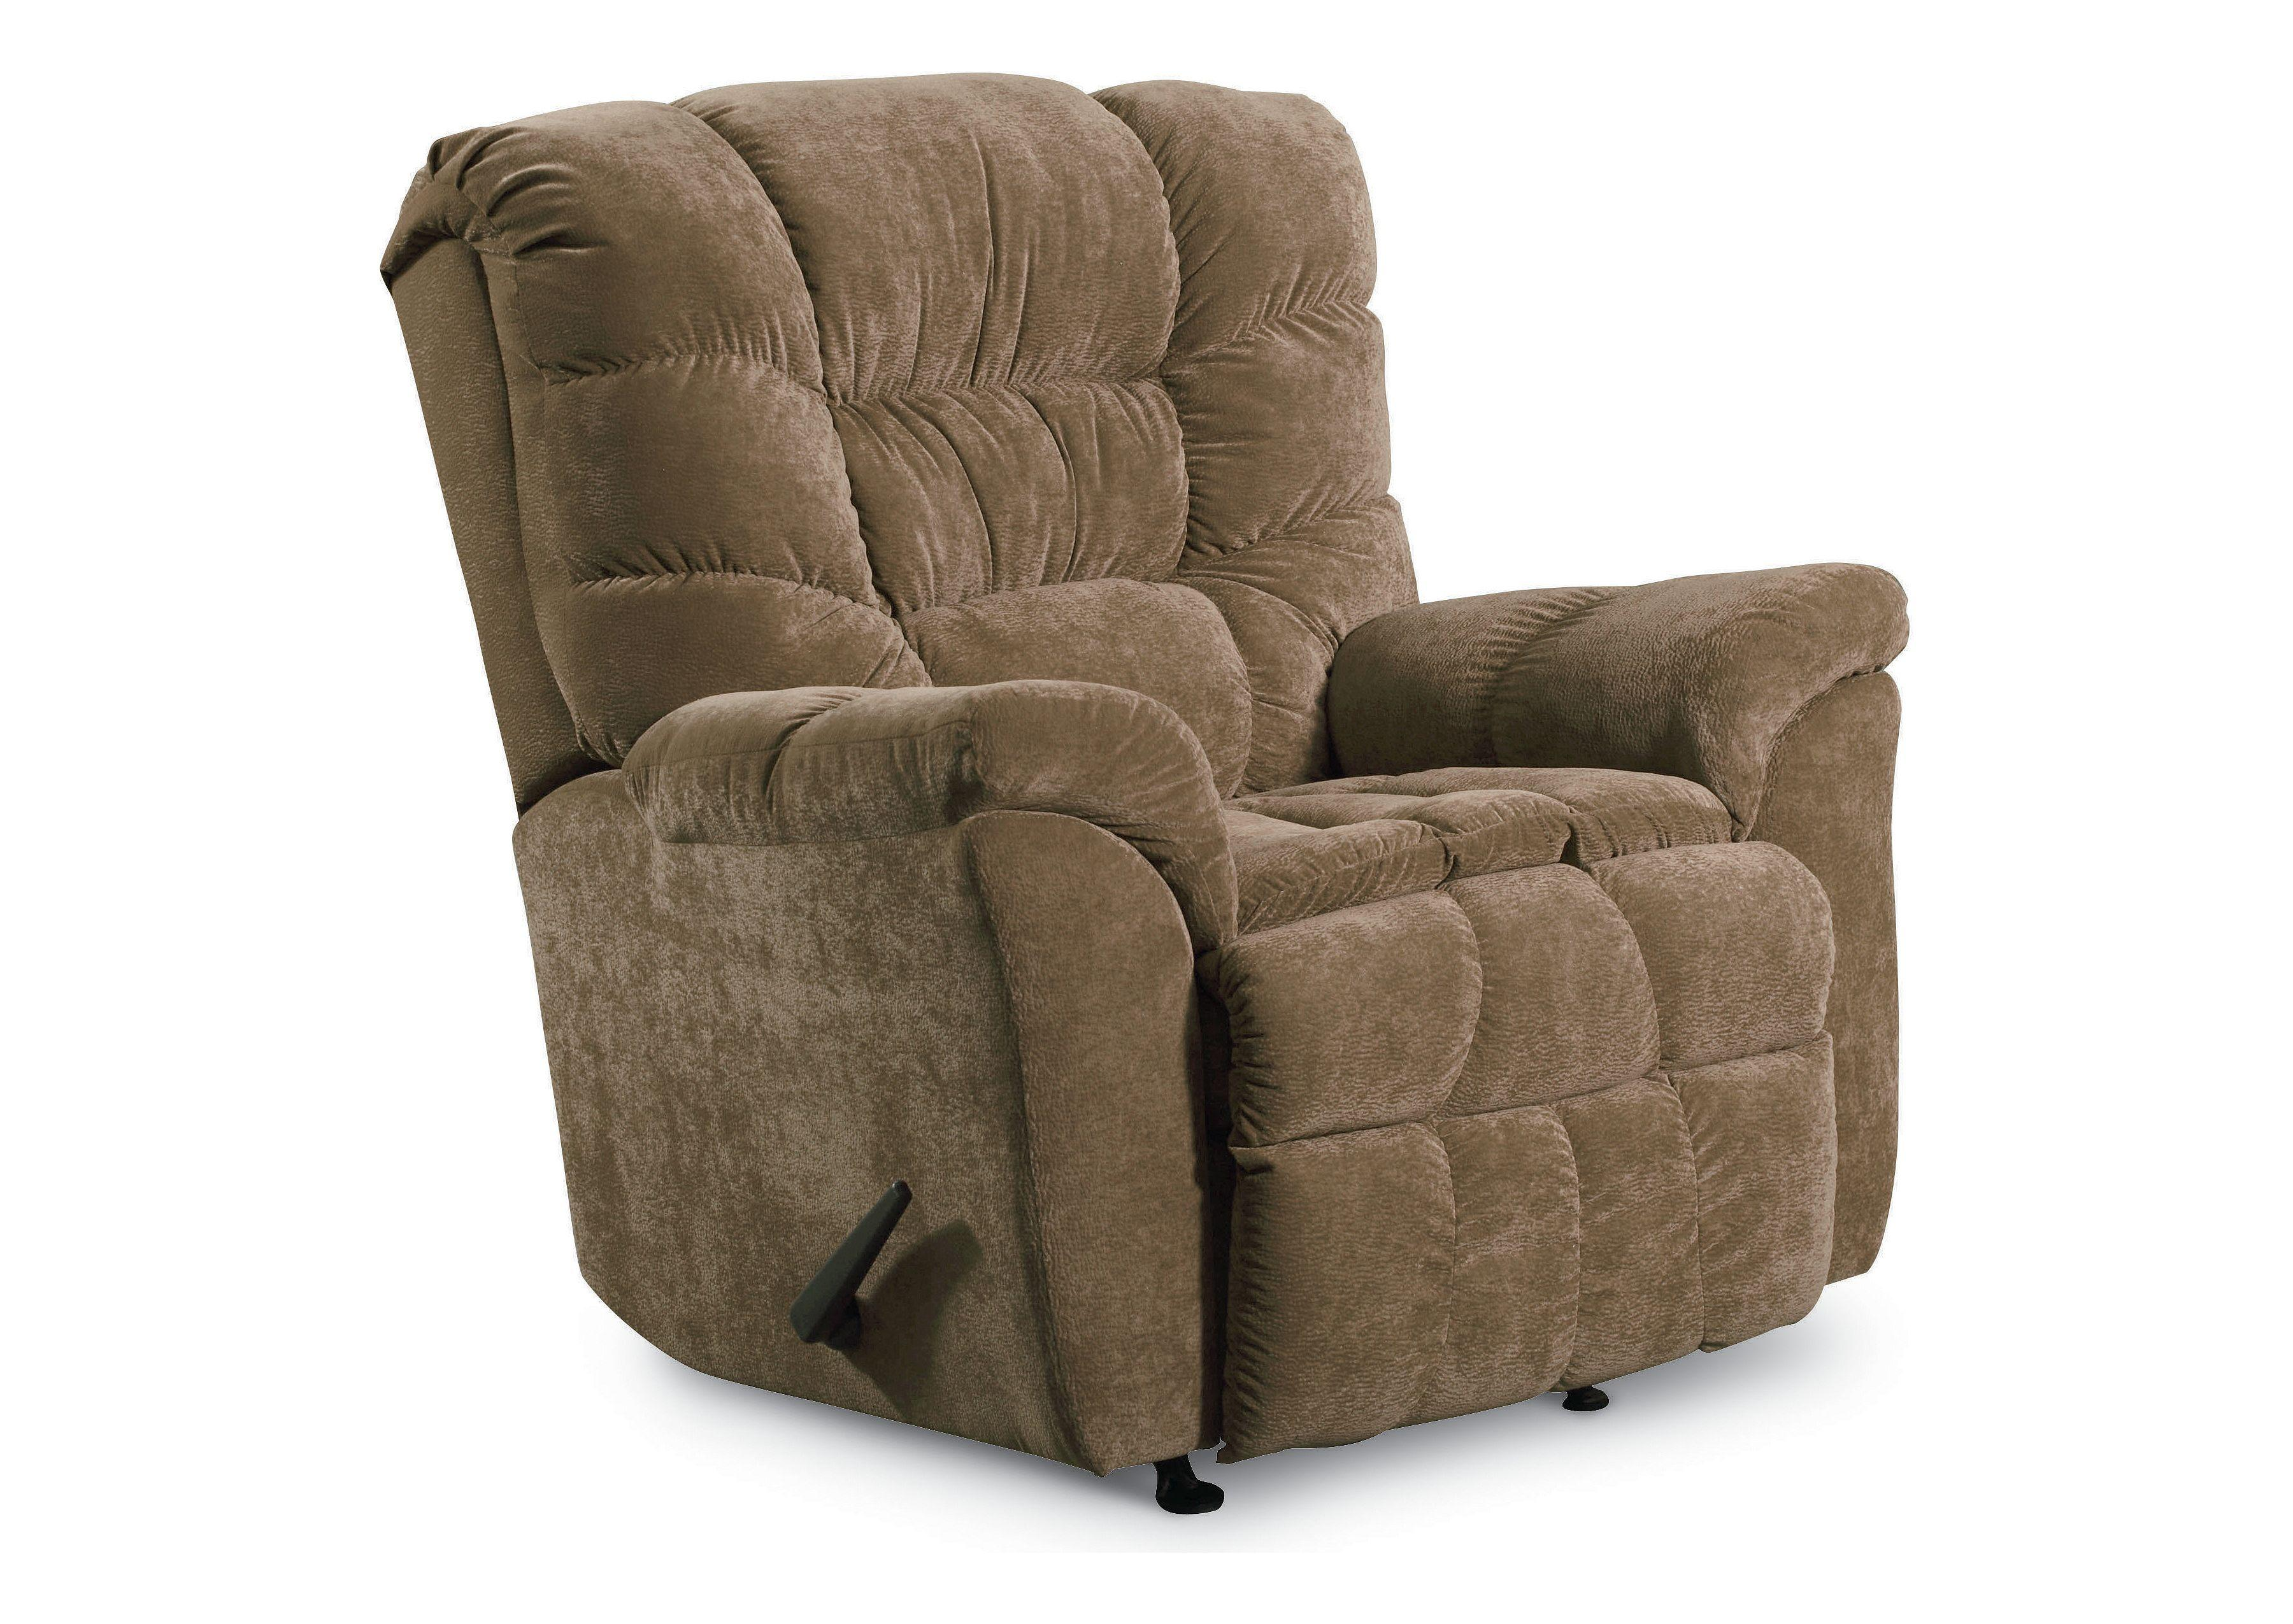 Lane Rocker - Lane Extravaganza Rocker Recliner - Item Number: 11702-4013-17